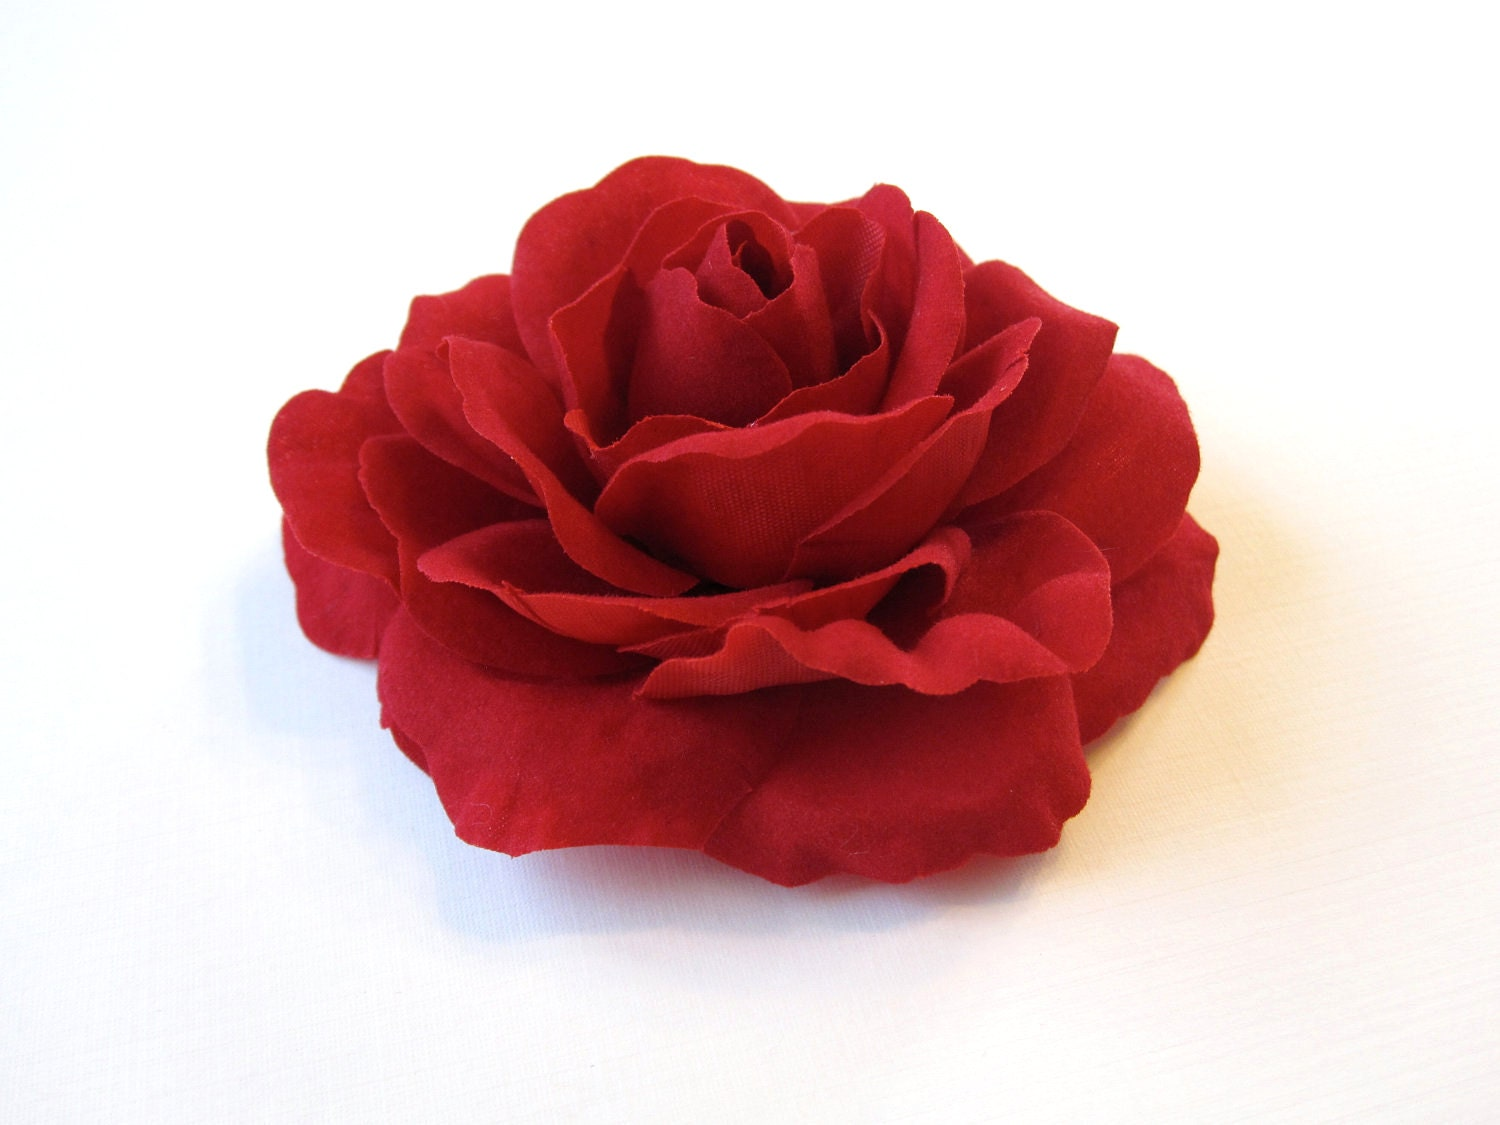 Fabric Flower Hair Clip, Brooch, or Pin - Crimson Red Velvet Rose - HairFair